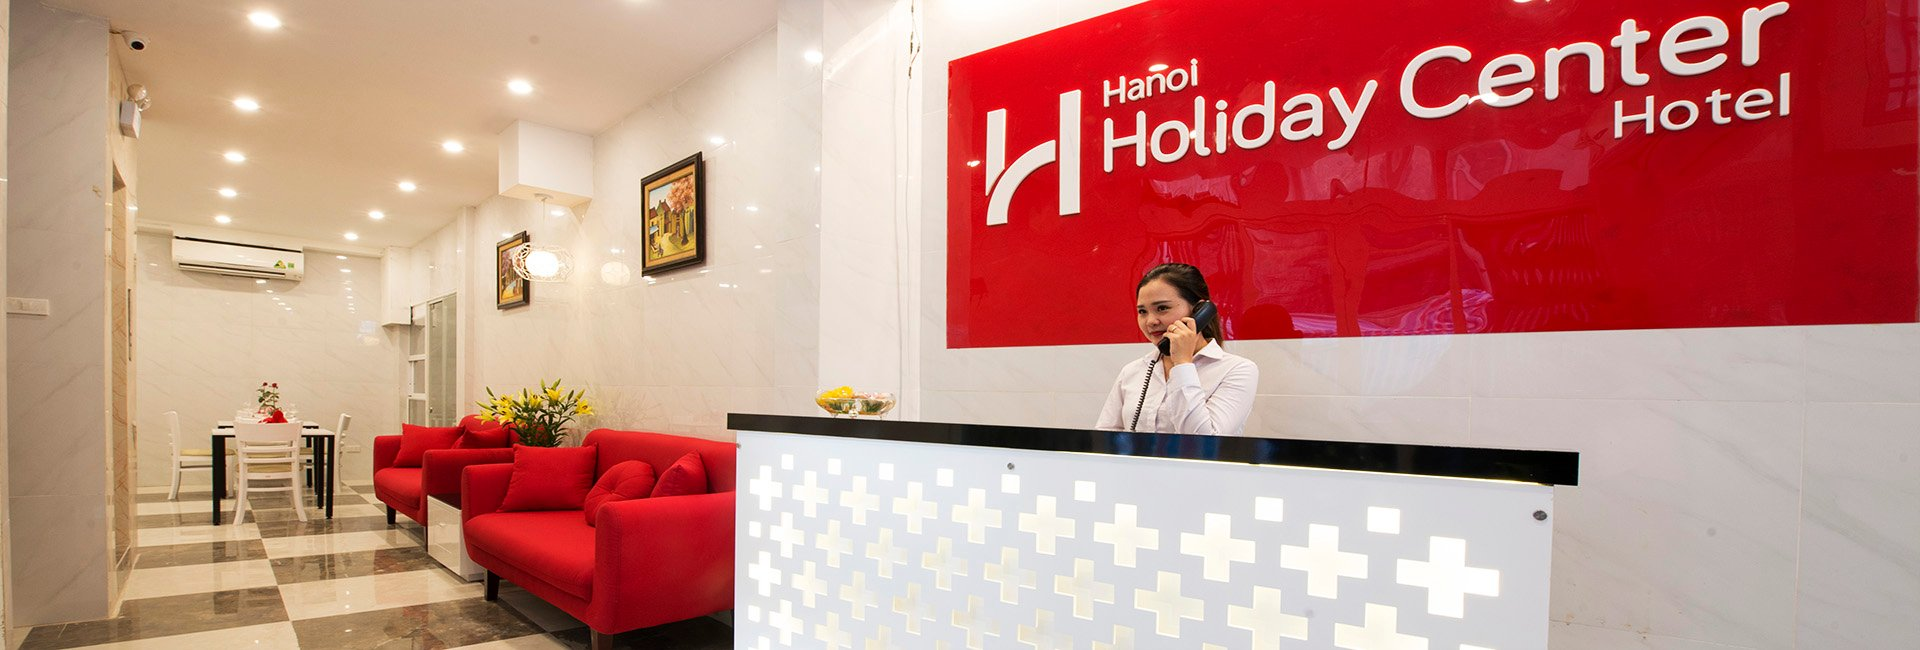 Ha Noi Holiday Center Hotel